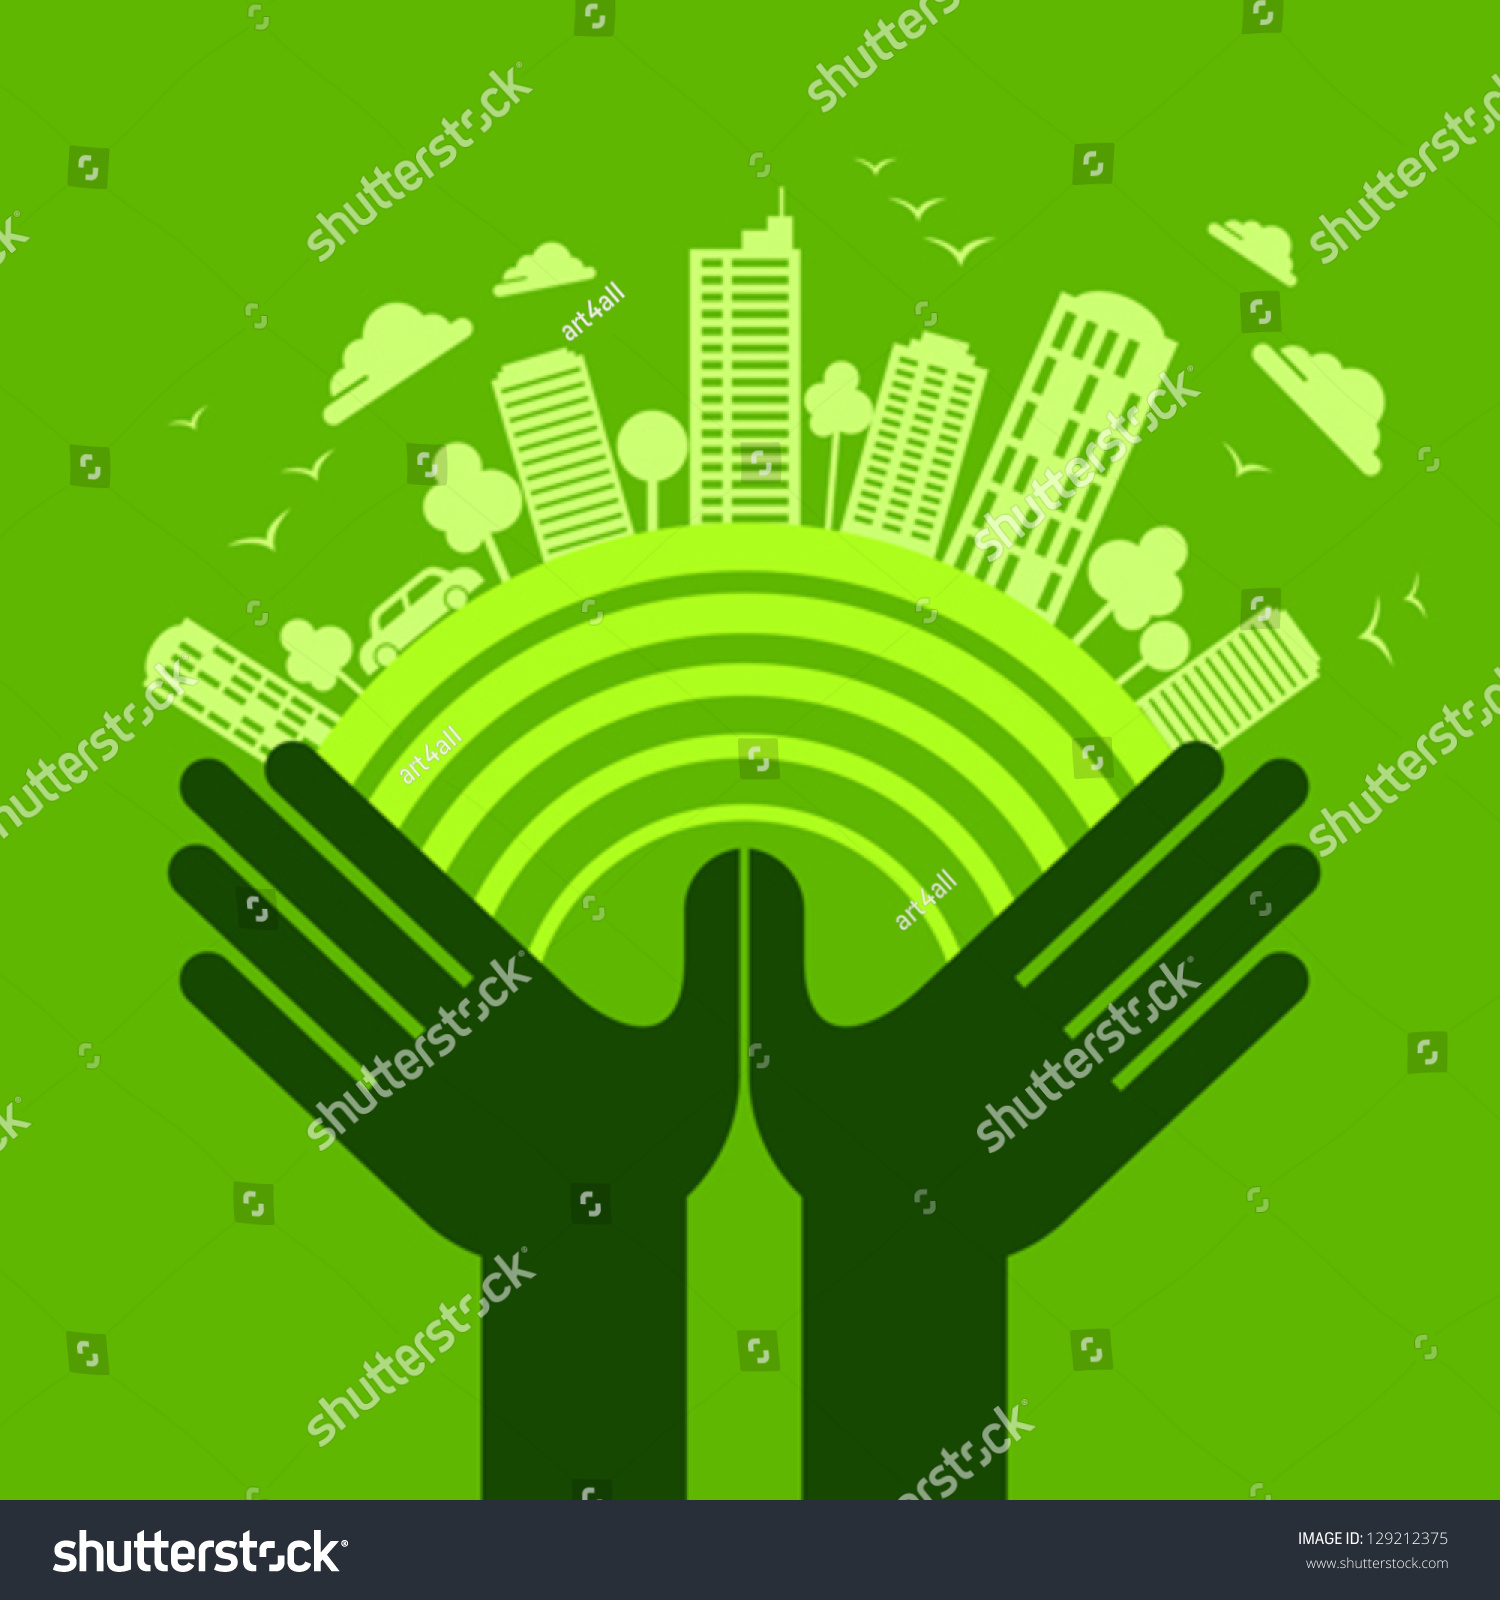 eco friendly hand concept stock vector 129212375 shutterstock. Black Bedroom Furniture Sets. Home Design Ideas